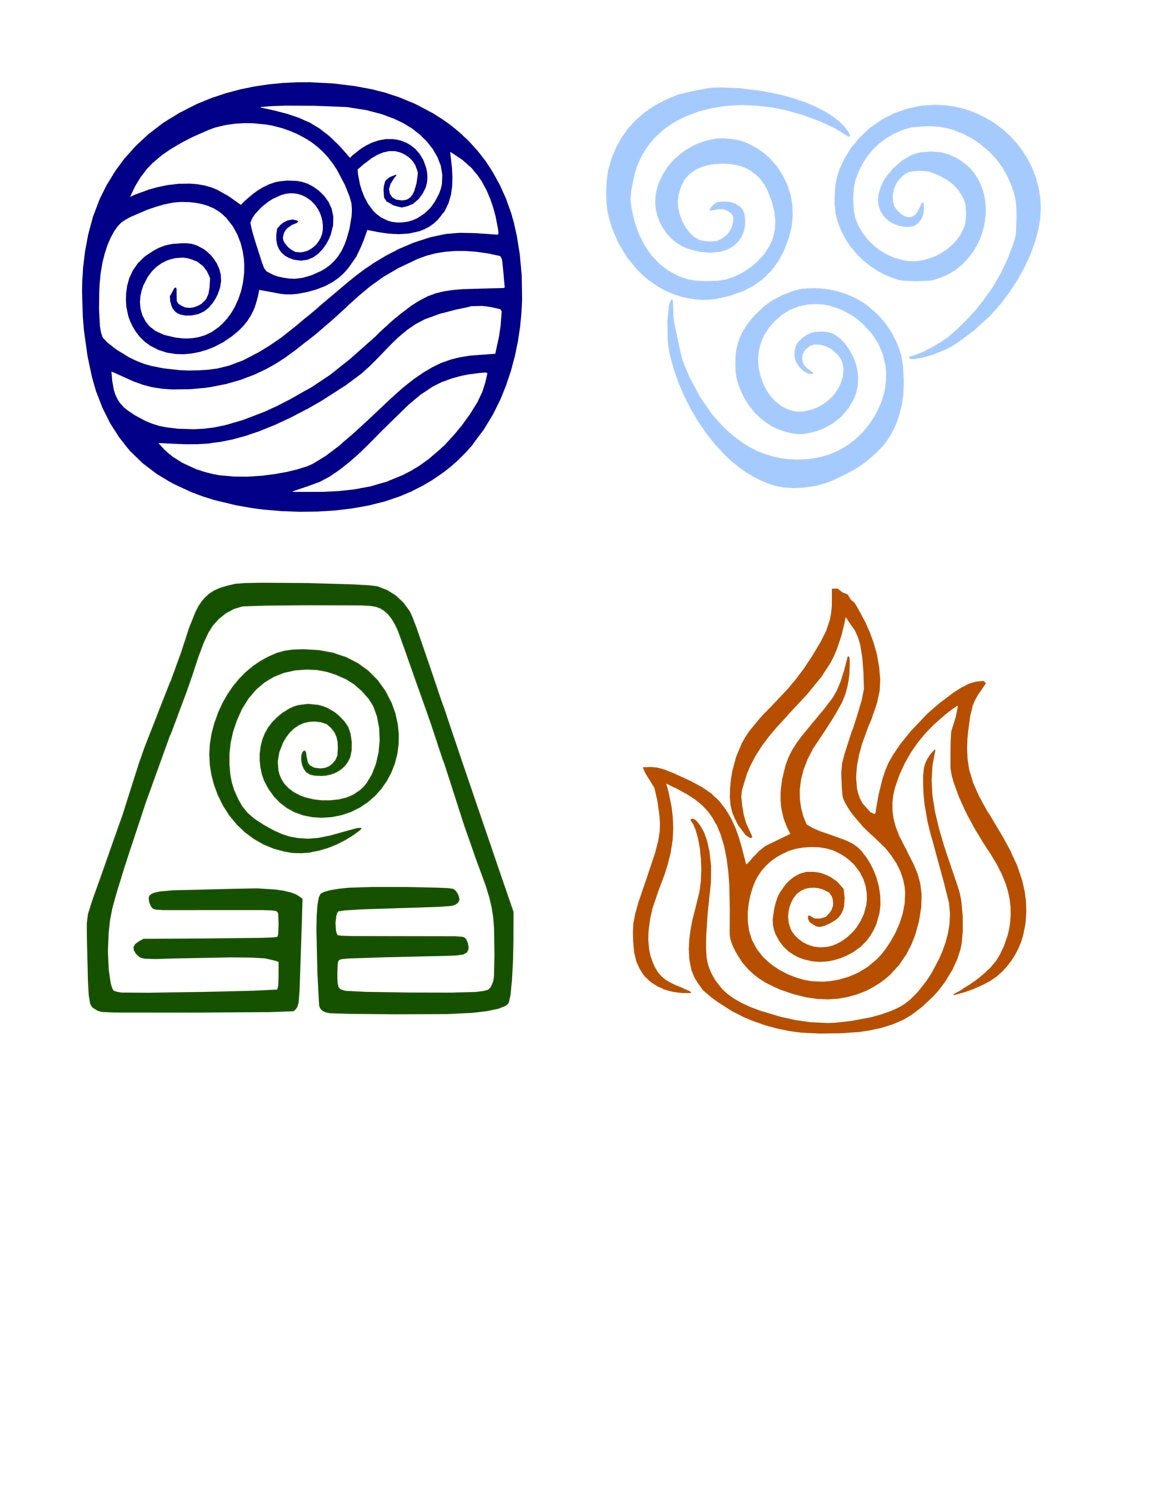 Avatar the last airbender the four elements avatar decal zoom buycottarizona Gallery